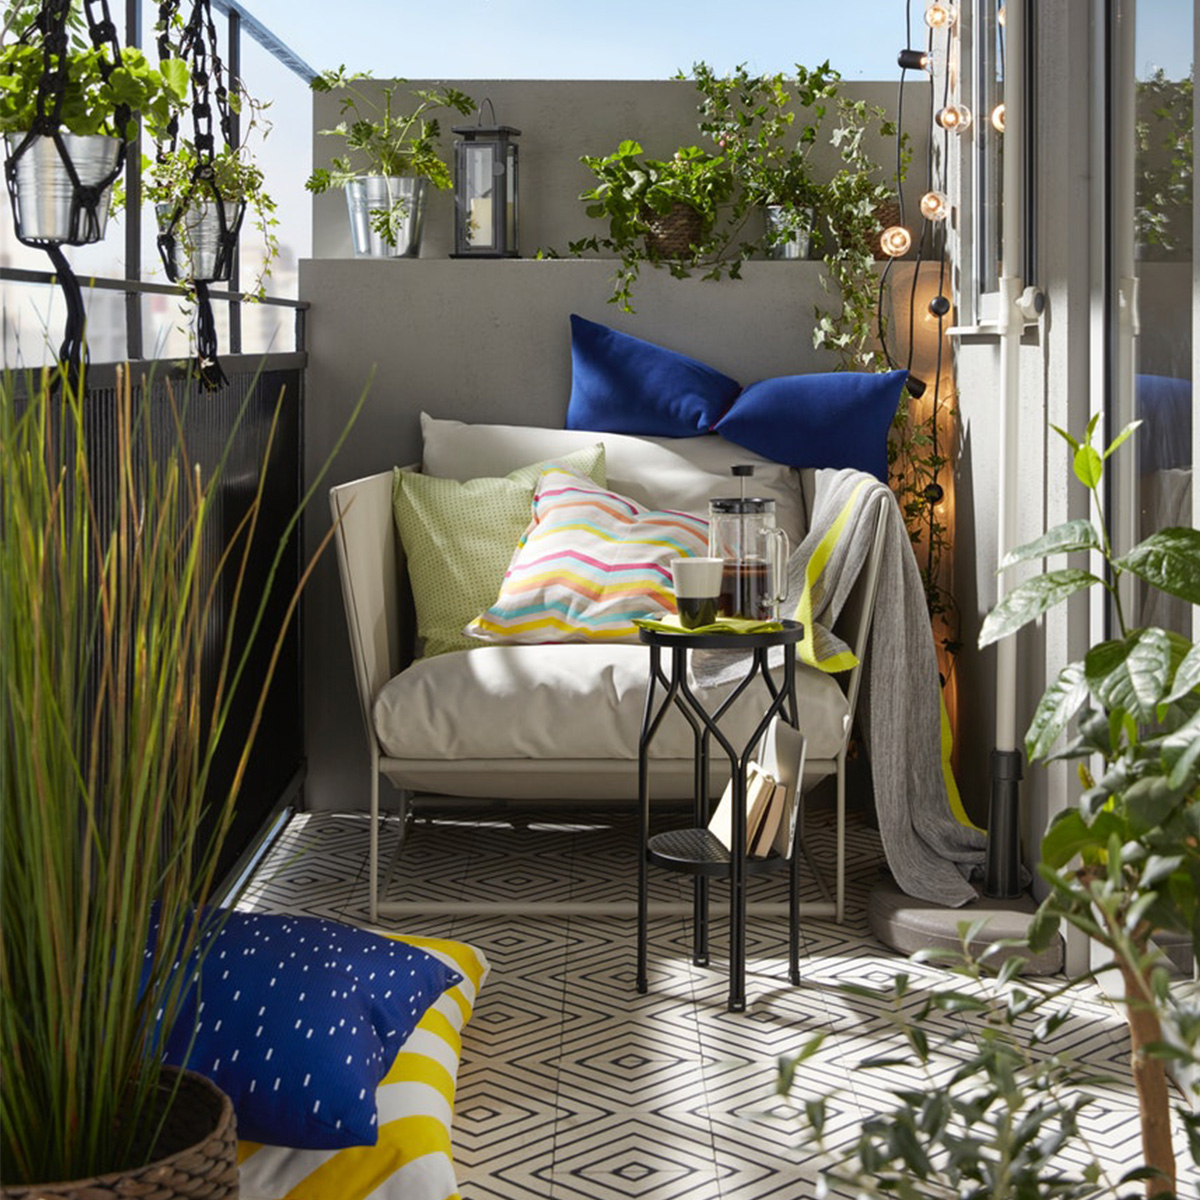 amenagement salon de jardin charmant idees pour l amenagement du jardin ikea de amenagement salon de jardin